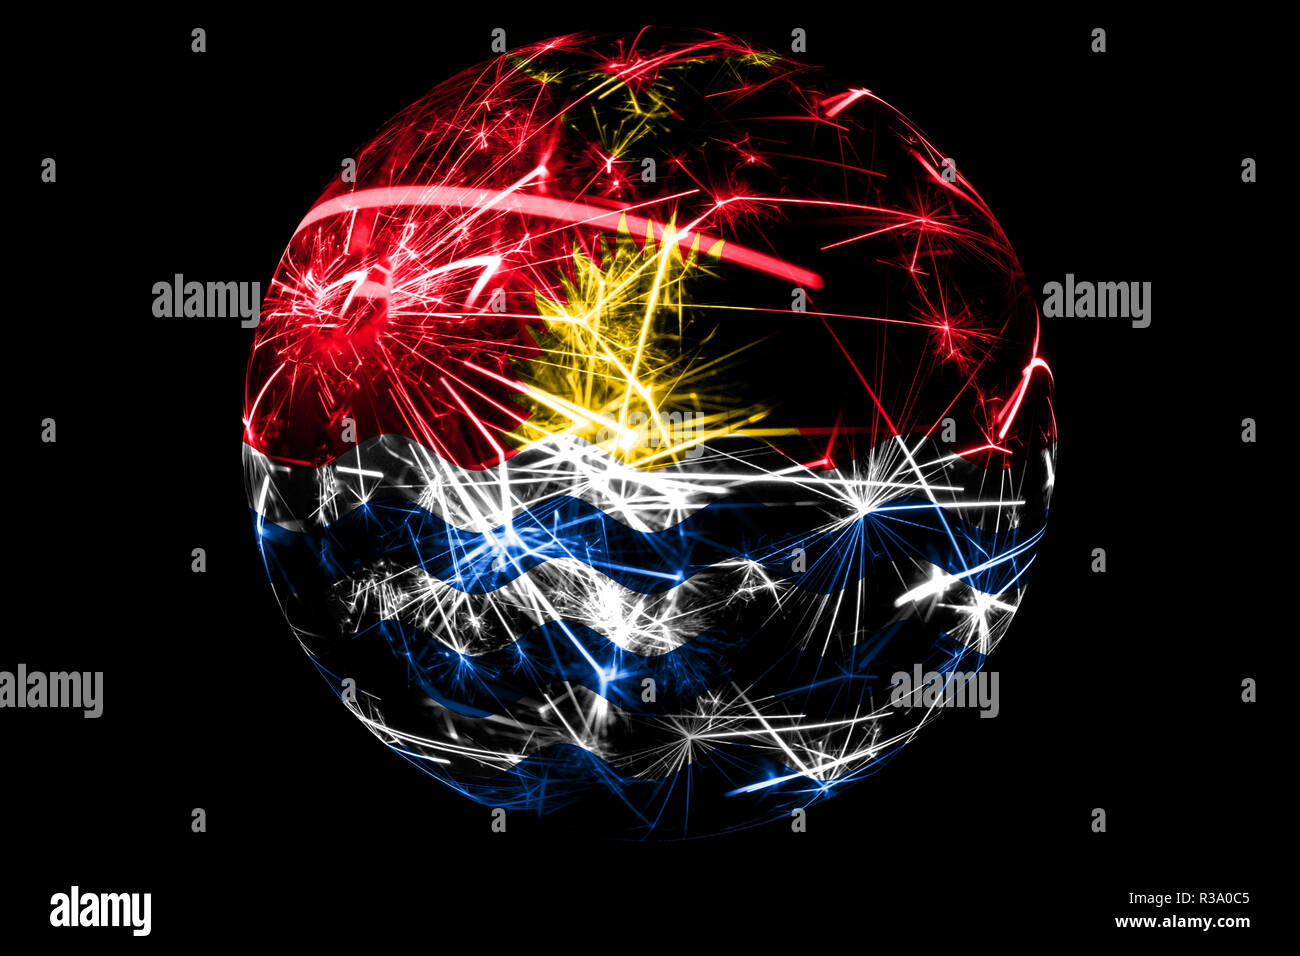 Abstract Kiribati sparkling flag, Christmas ball holiday concept isolated on black background - Stock Image